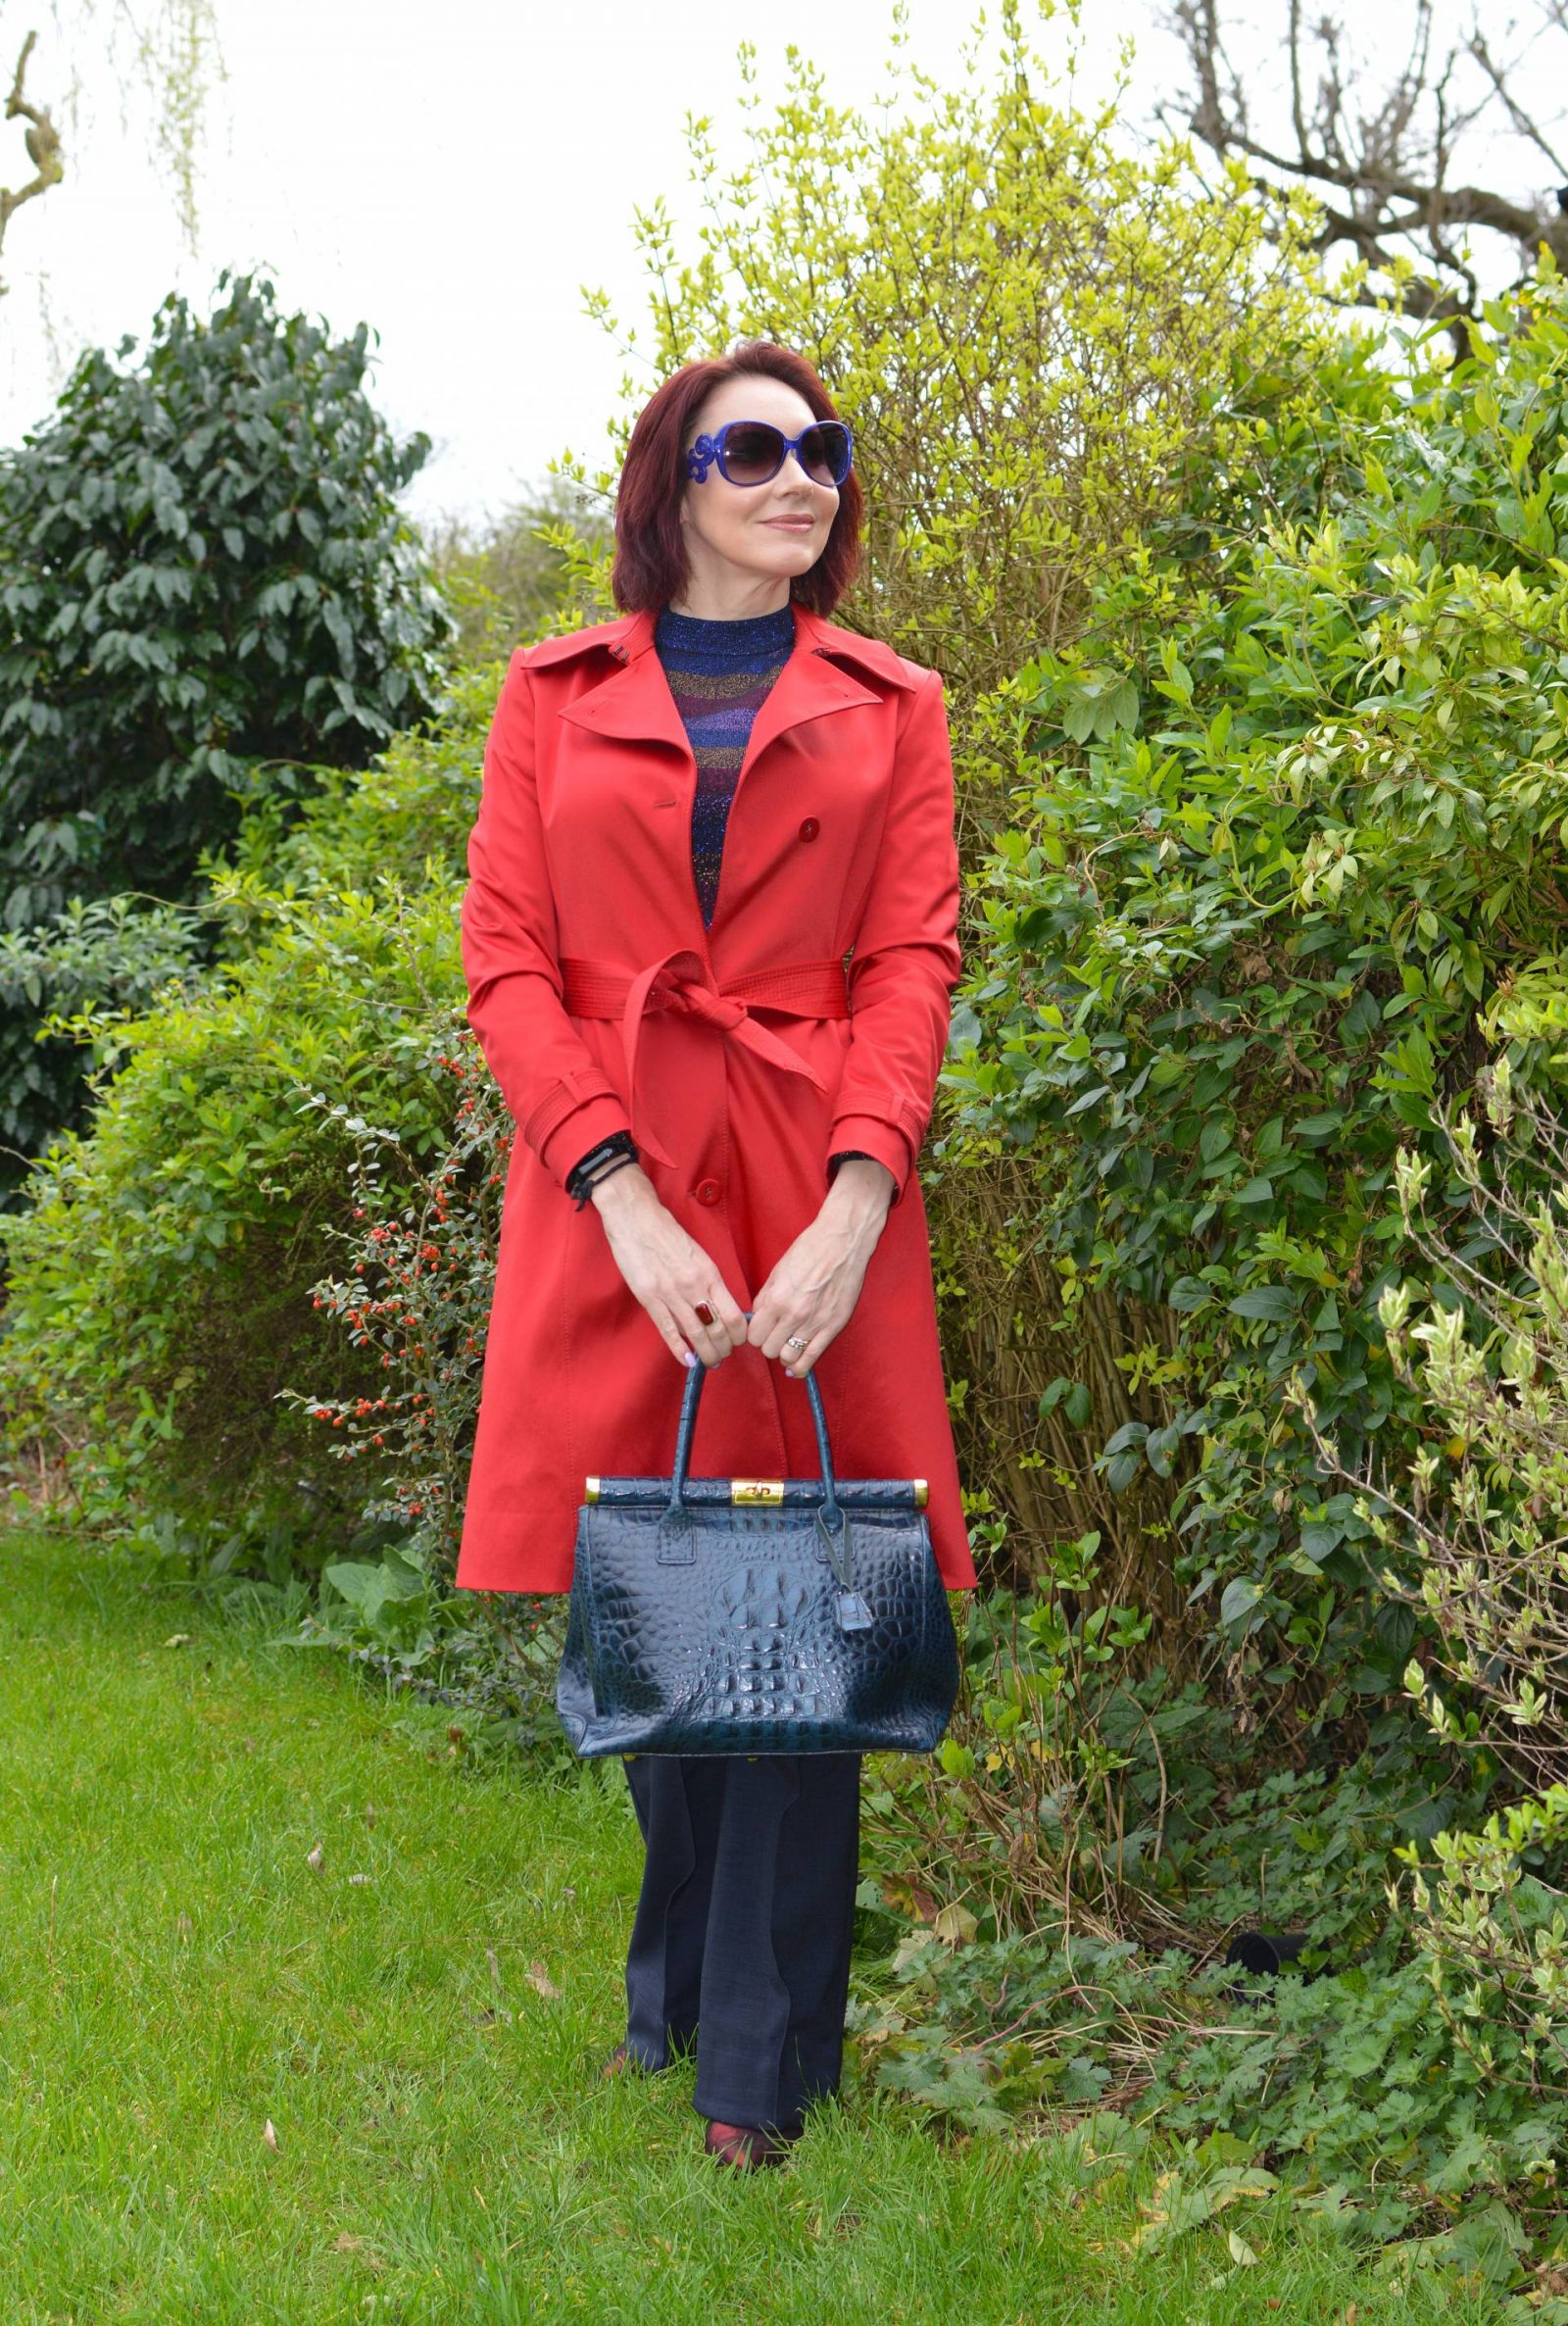 Sparkly Stripes and Bright Red Trench Coat, Oasis metallic stripe jumper, Finery Barby trousers, Biba red trench coat, Oasis metallic stripe jumper, Finery Barby trousers, Biba red trench coat